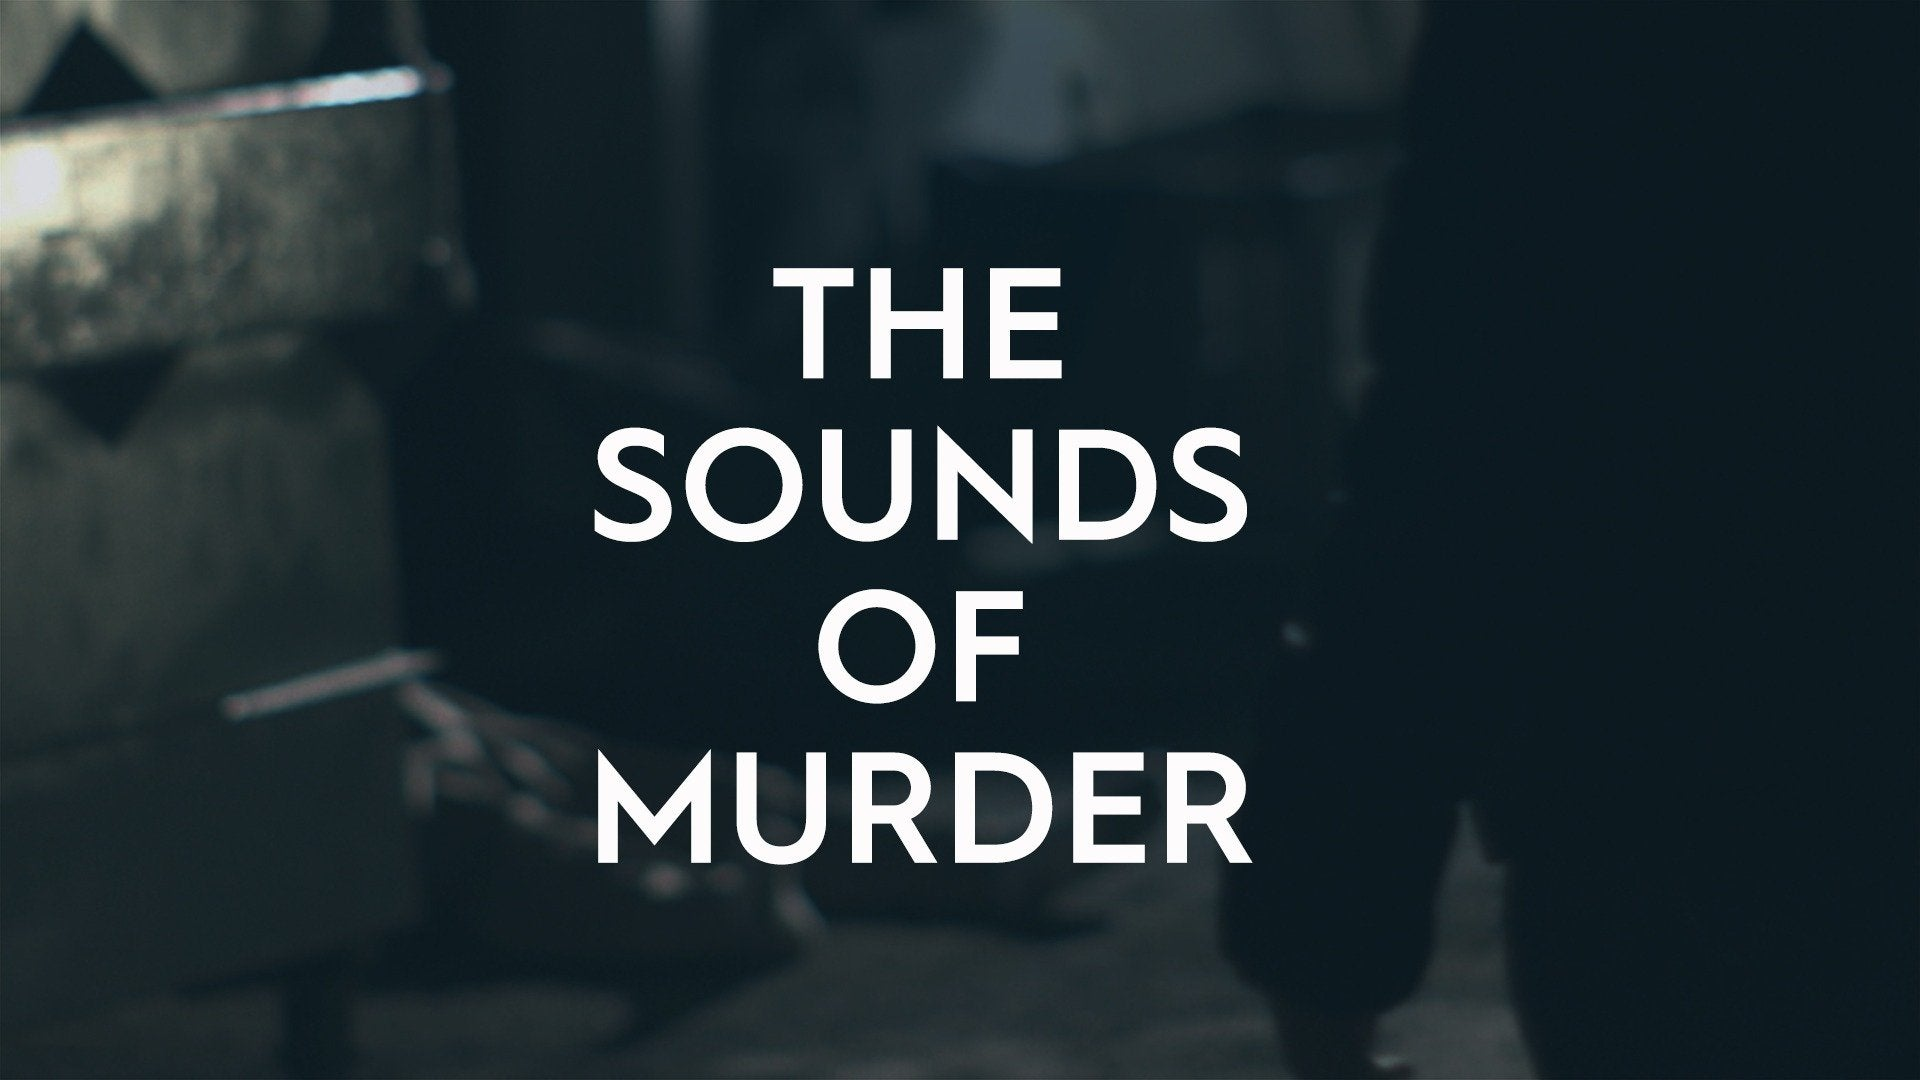 The Sounds of Murder